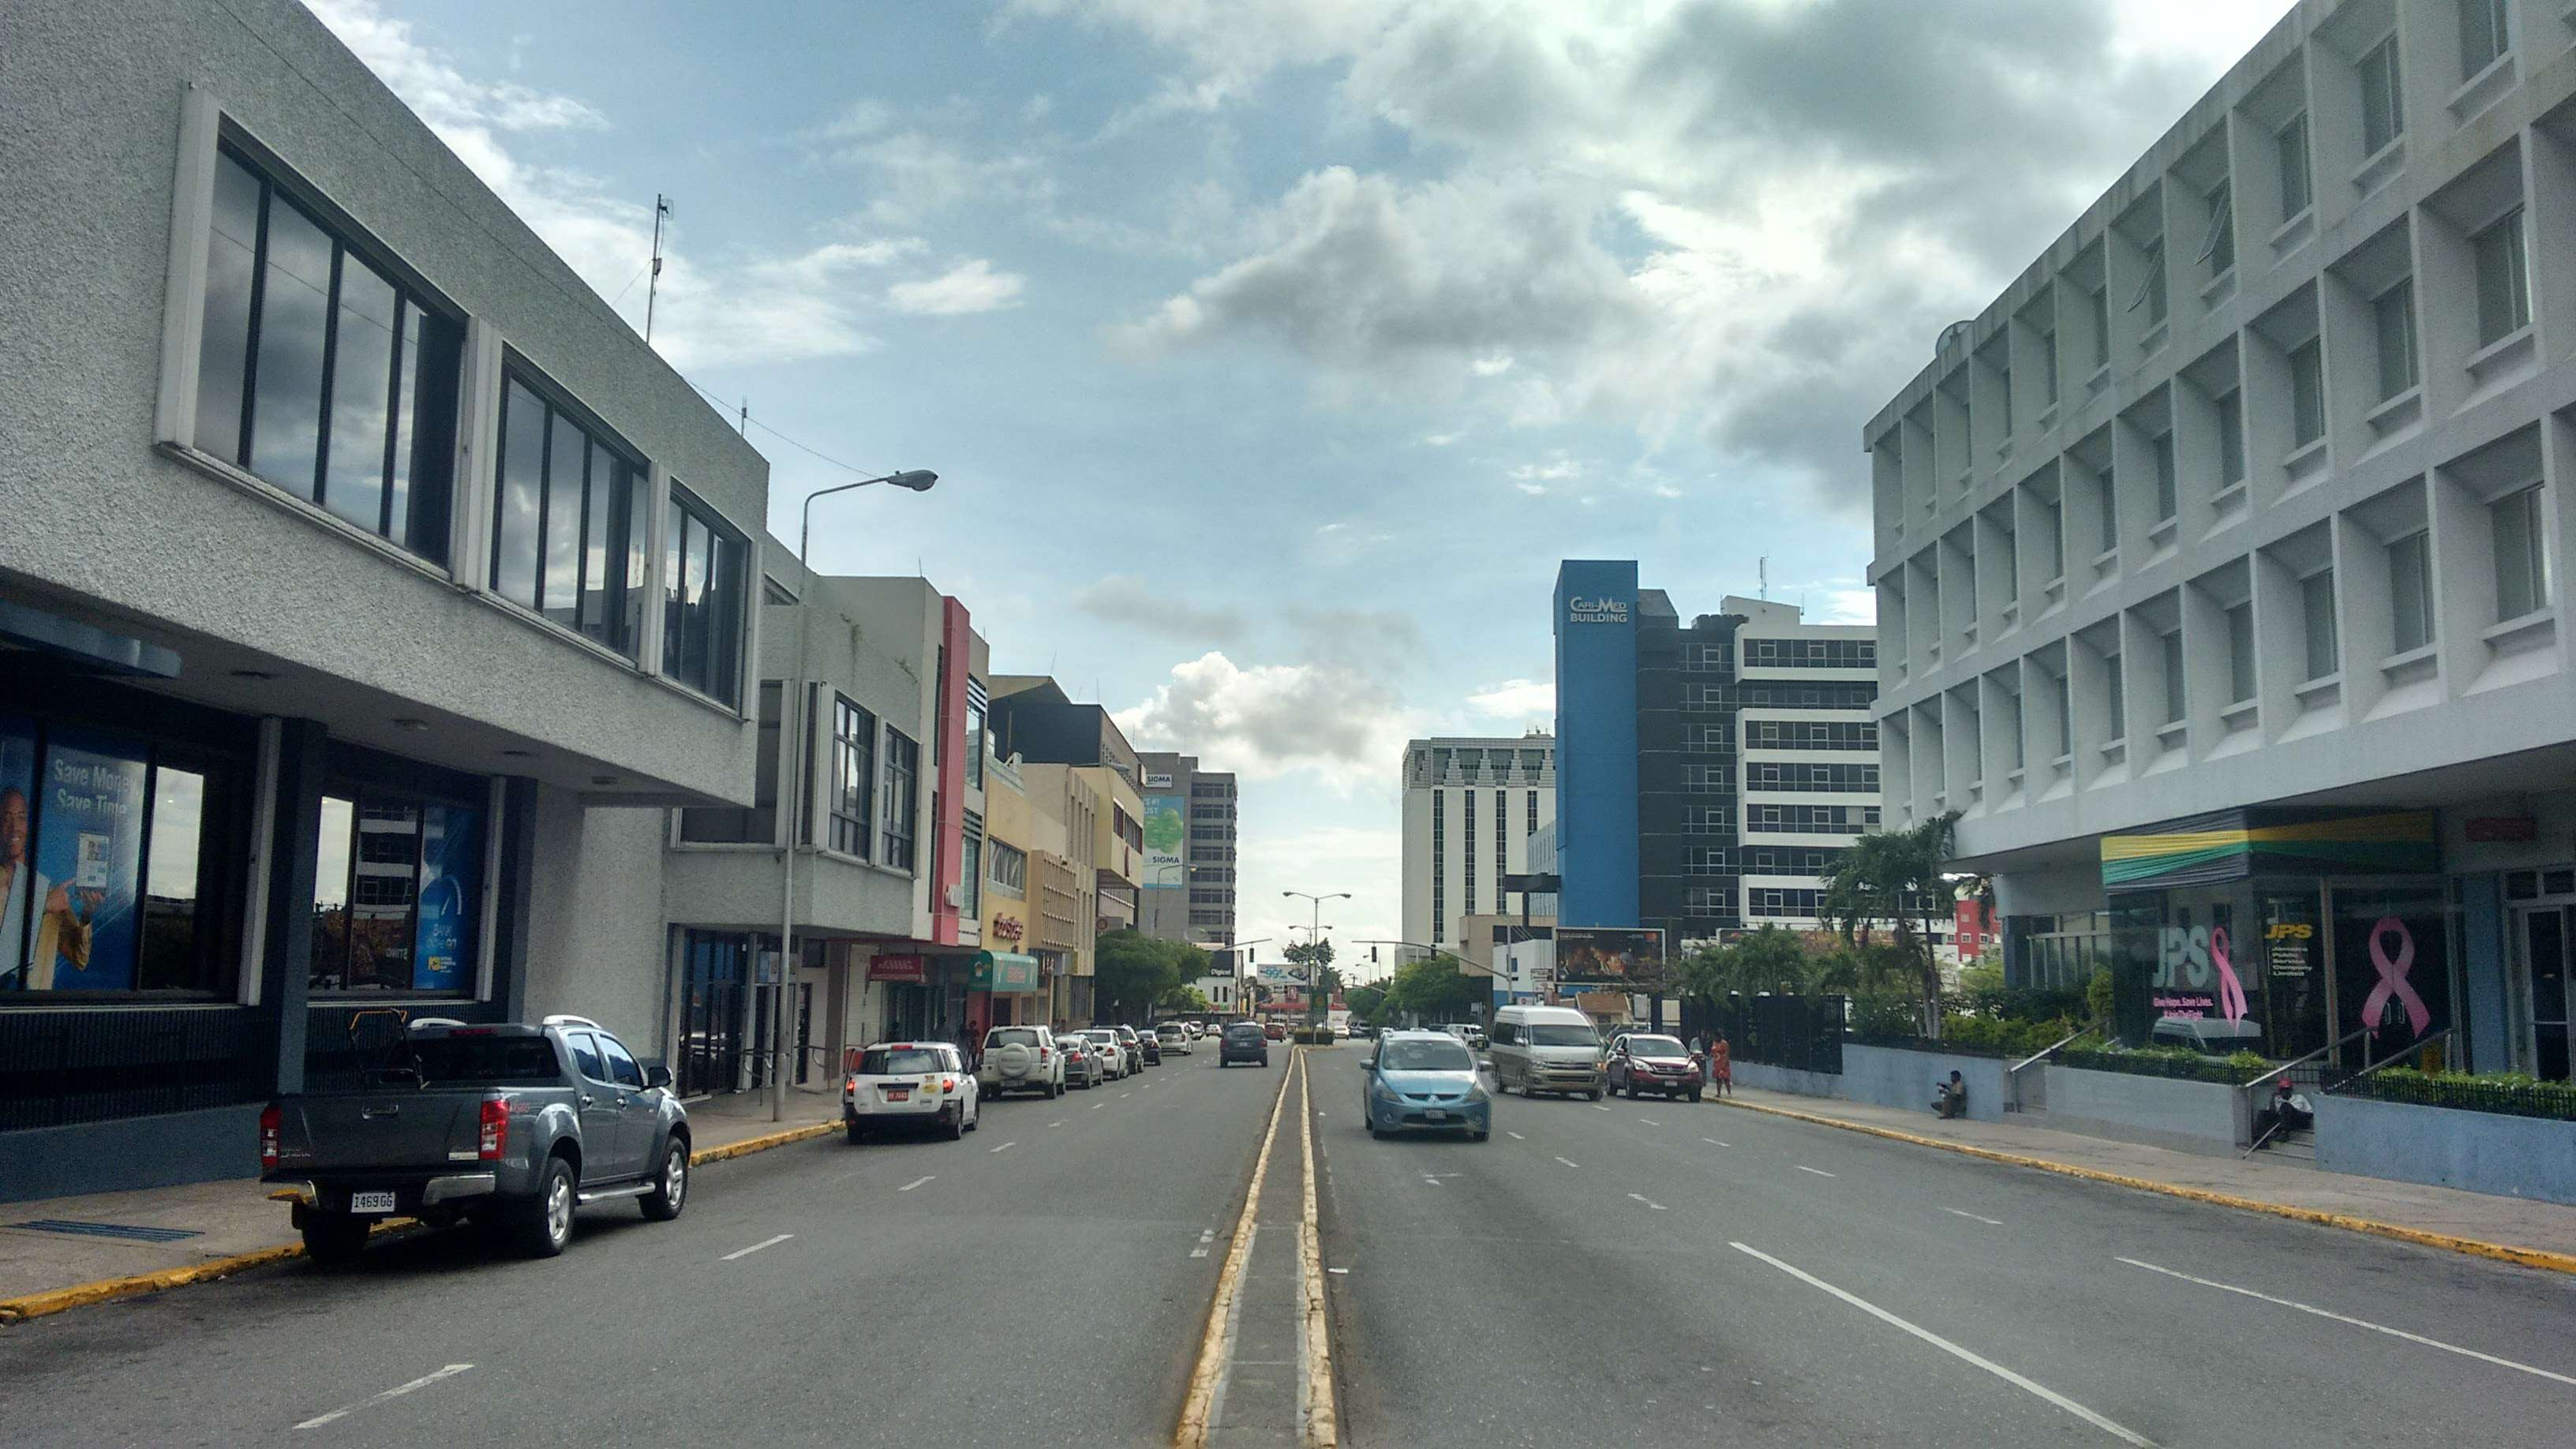 Commuters Cry For Help As Robberies Mount In New Kingston